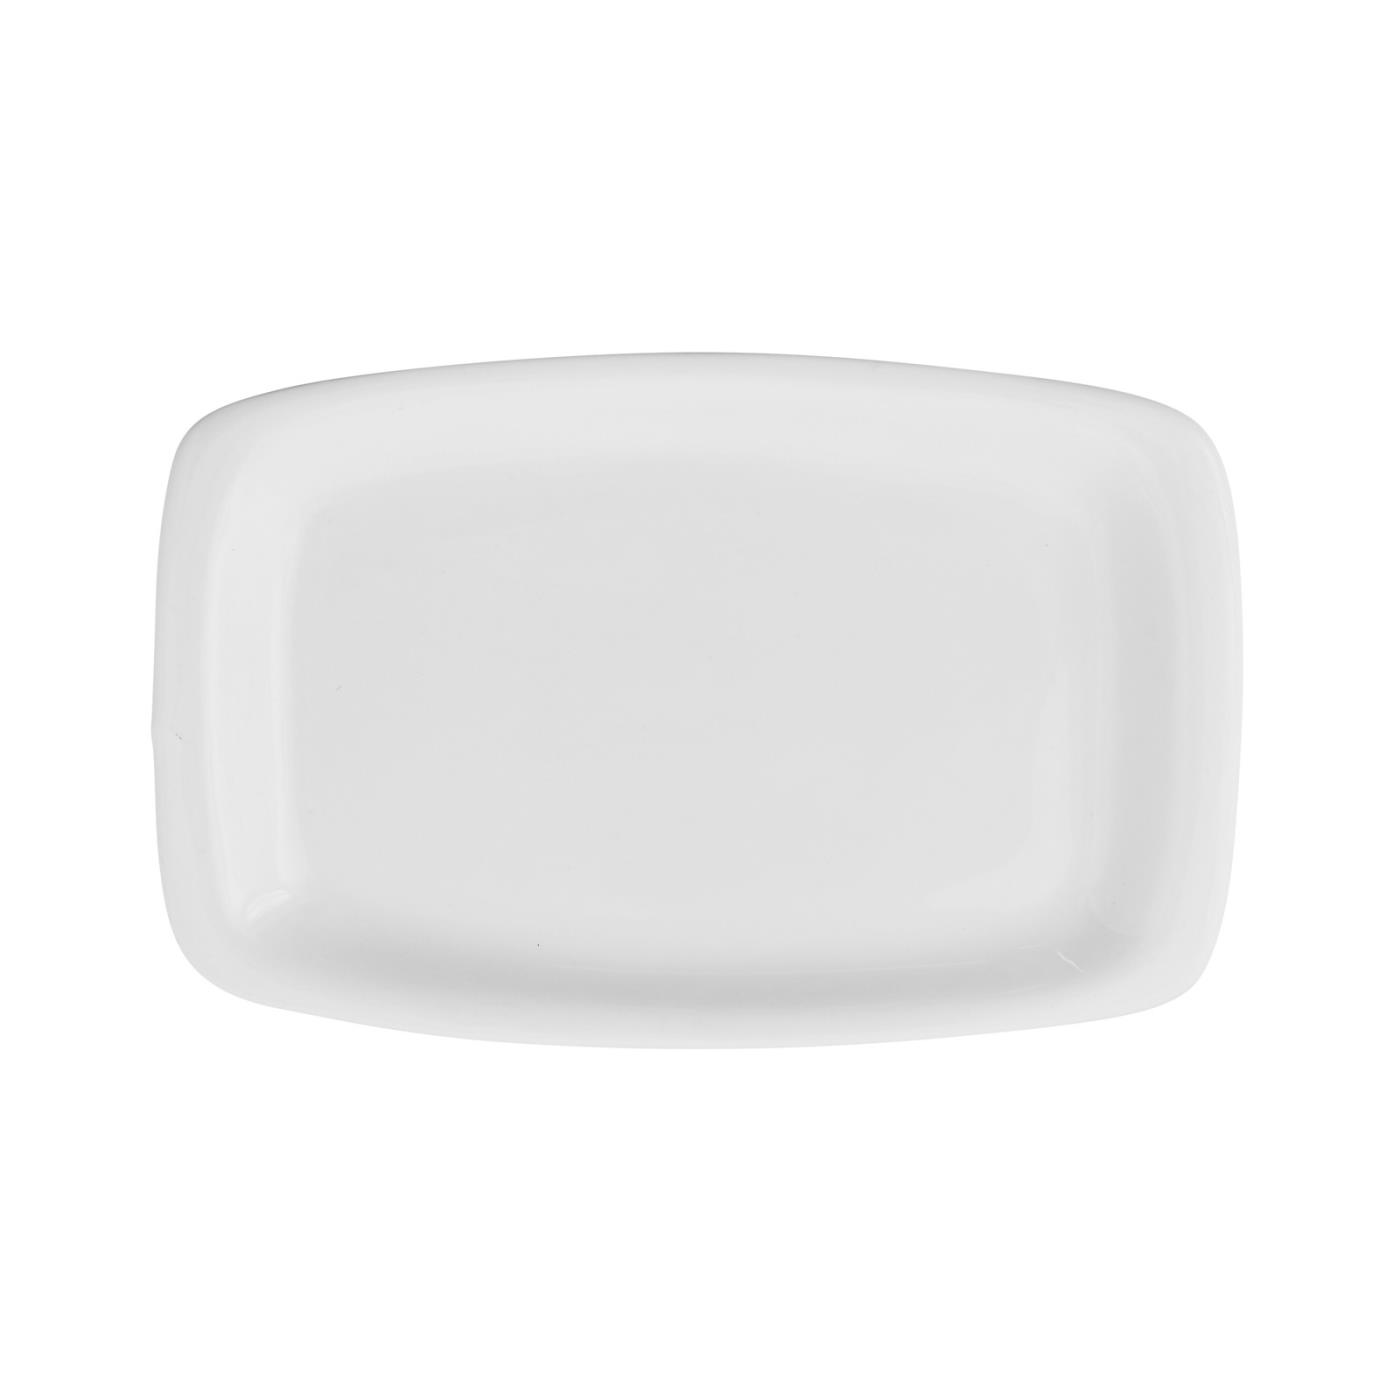 "White Rectangular -  5.5"" x 8.5"" Rounded Corners"